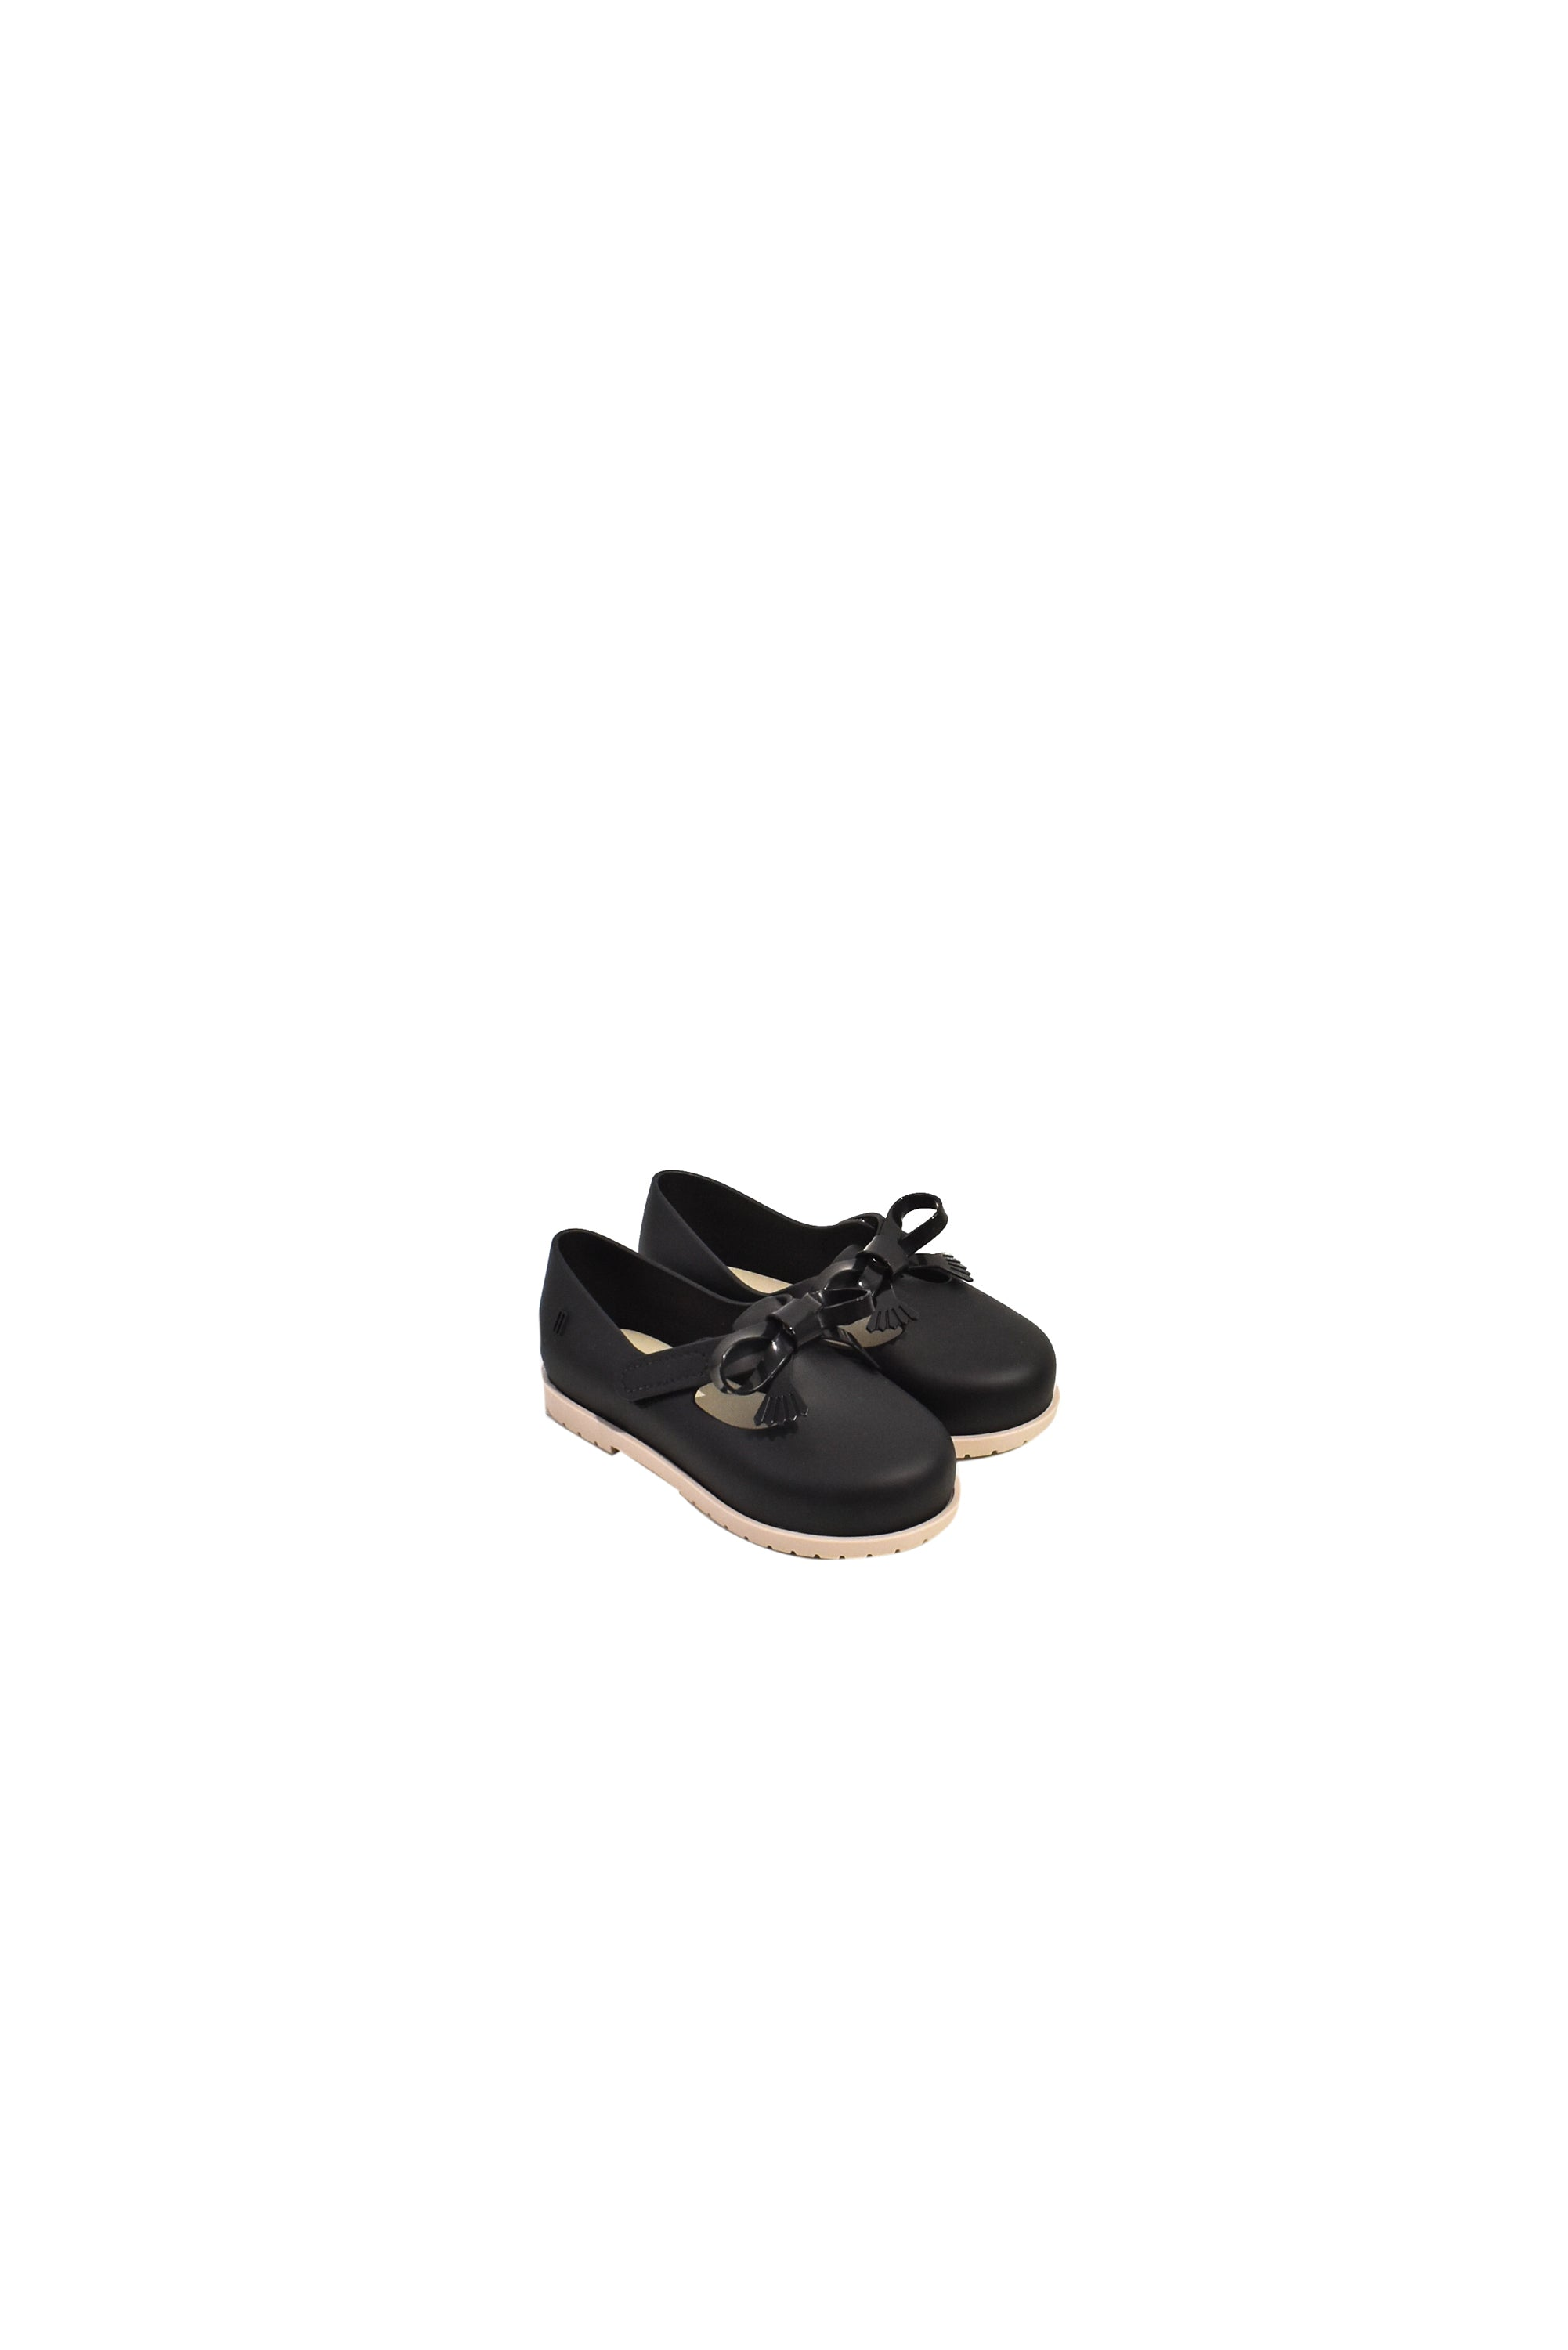 10031158 Melissa Kids~Shoes 4T (US 10) at Retykle